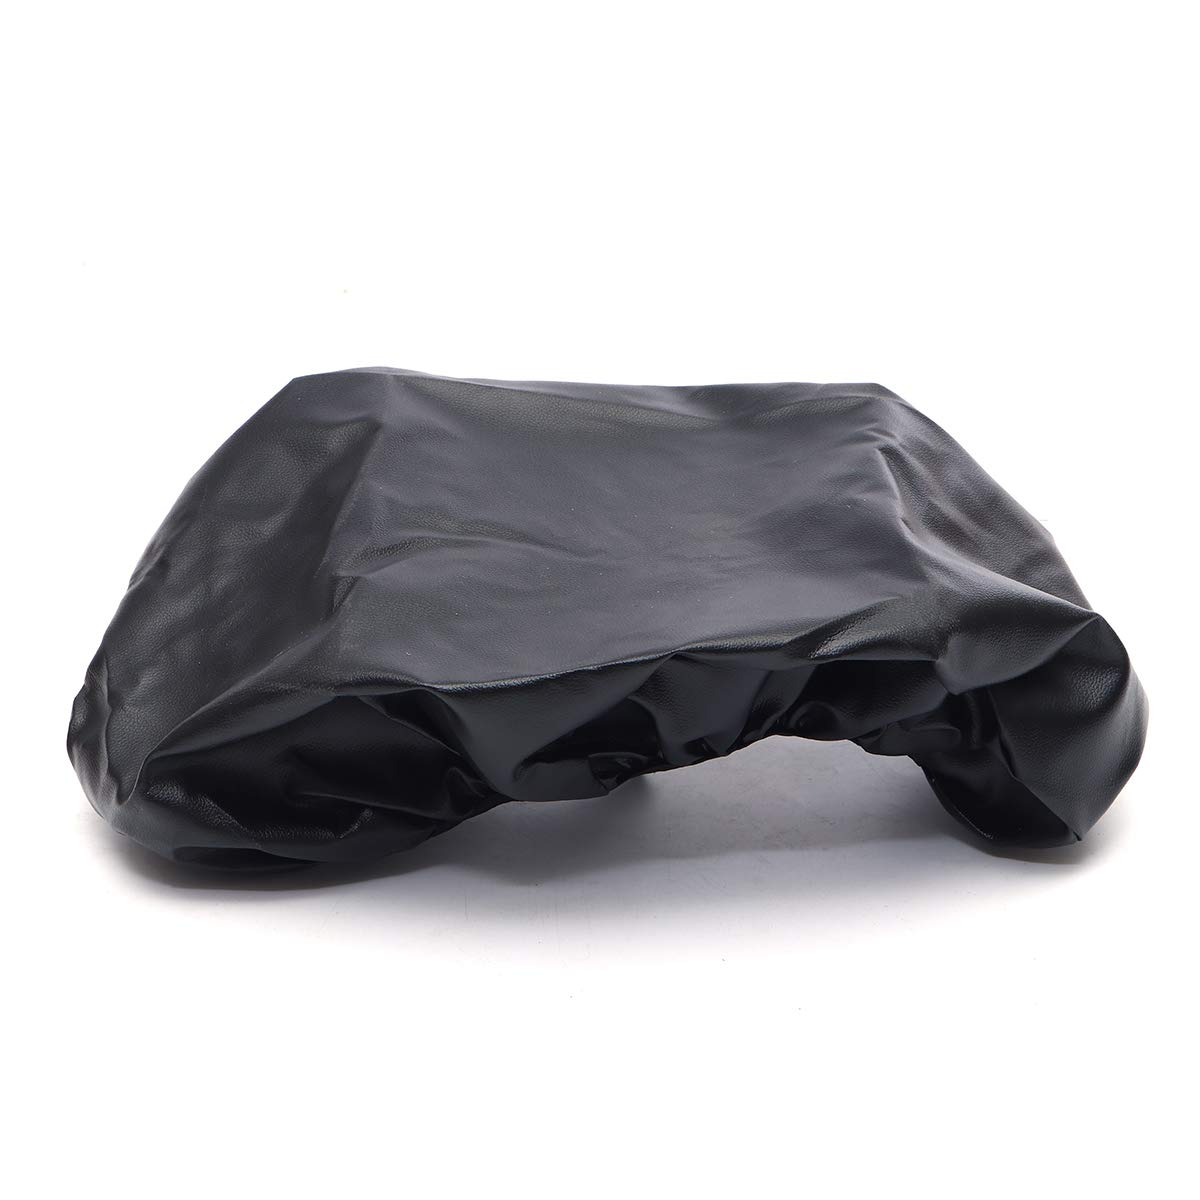 C-FUNN Waterproof Motorcycle Sunscreen Seat Cover Prevent Bask Seat Scooter Sun Pad Heat Insulation Cushion Protect L